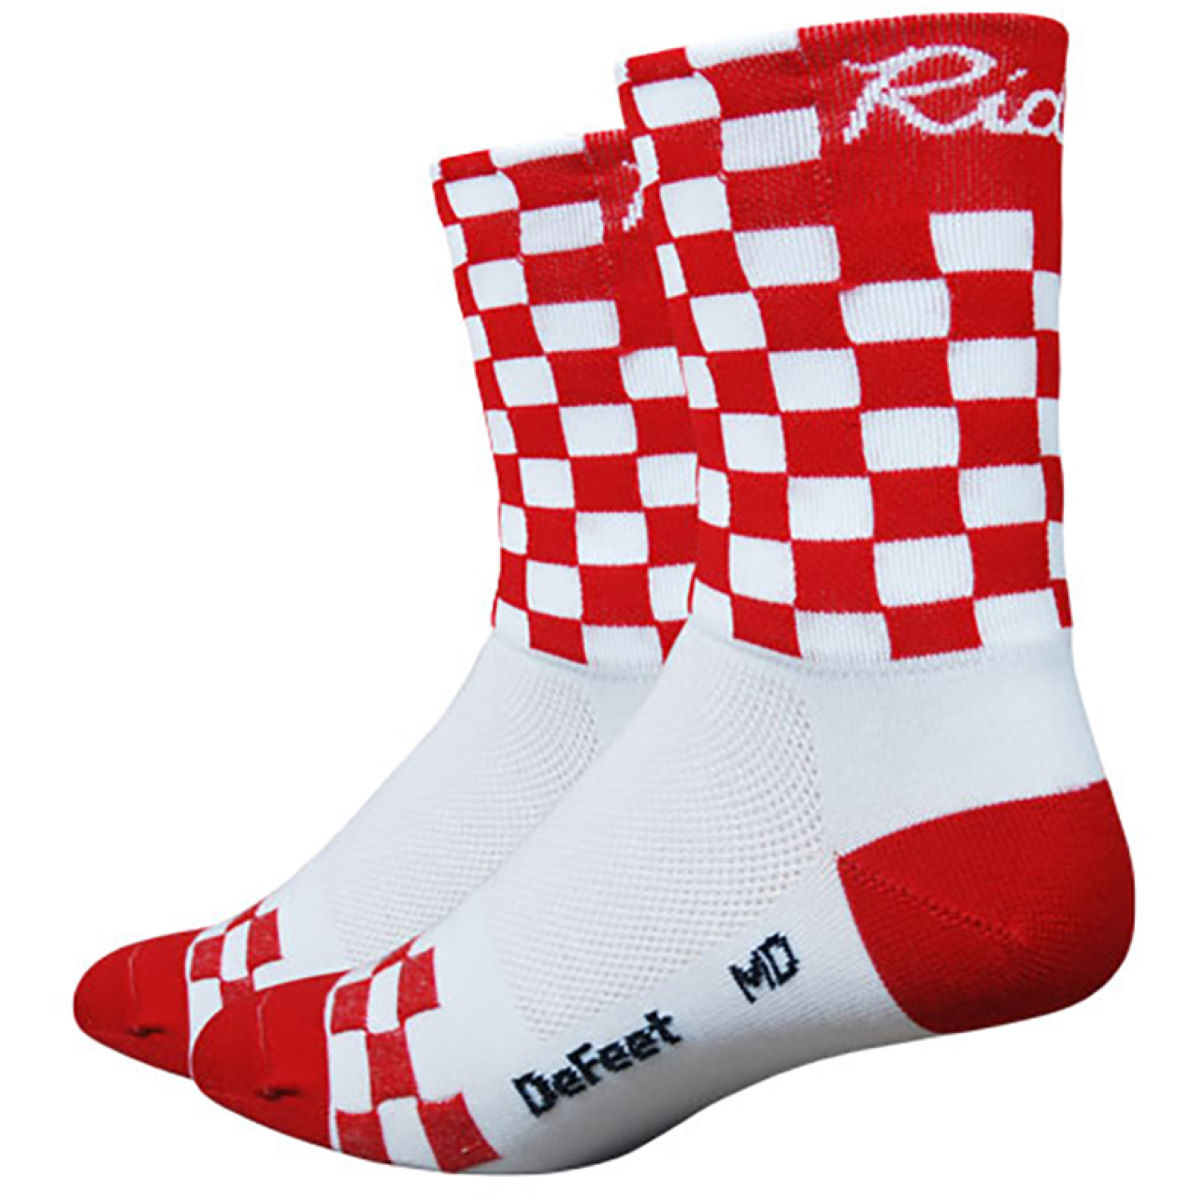 Chaussettes DeFeet Aireator Red Checkmate - XL Blanc/Rouge Chaussettes vélo